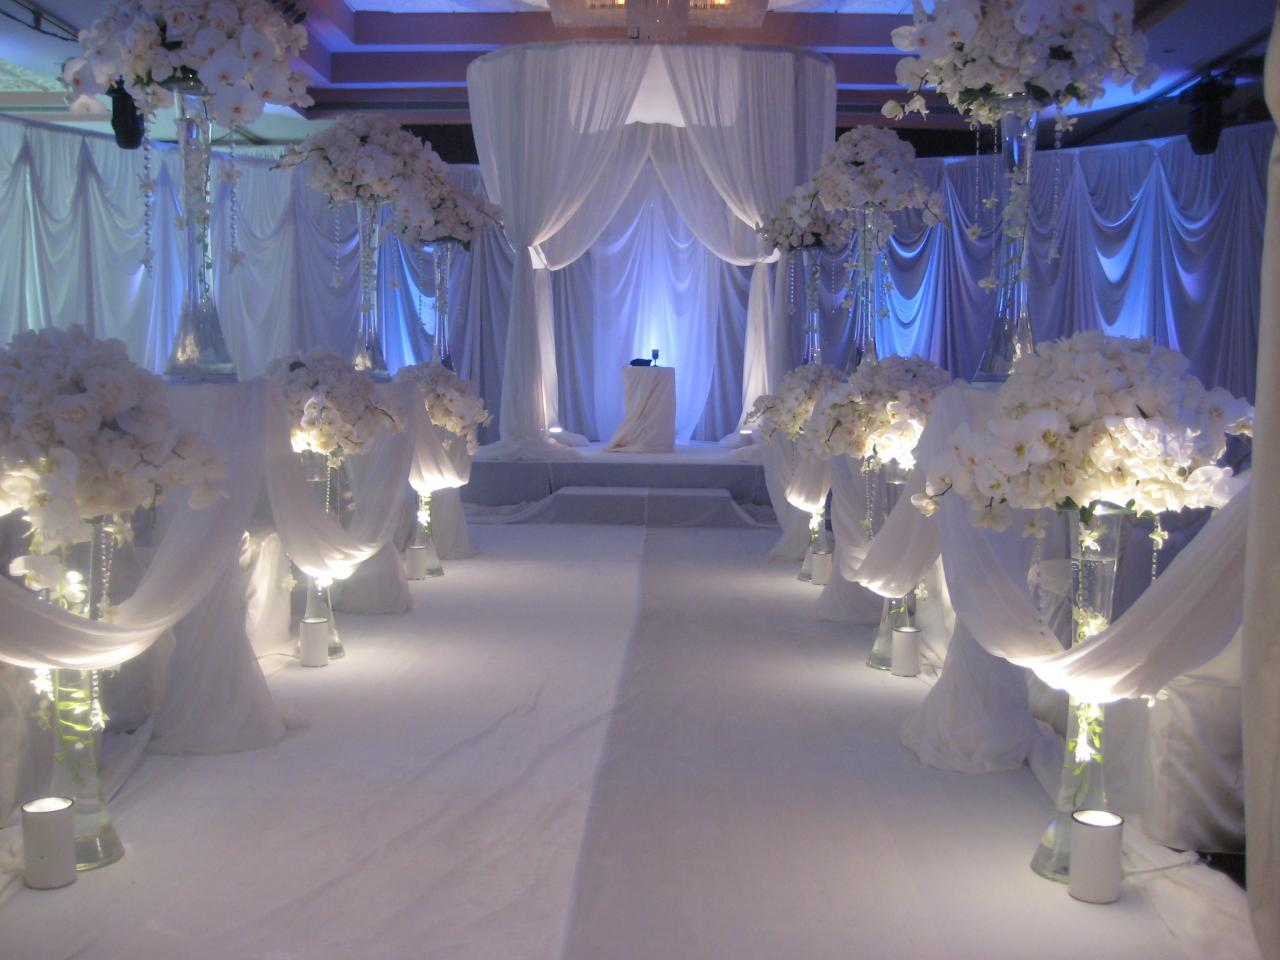 Pictures Of Wedding Decorations At Reception